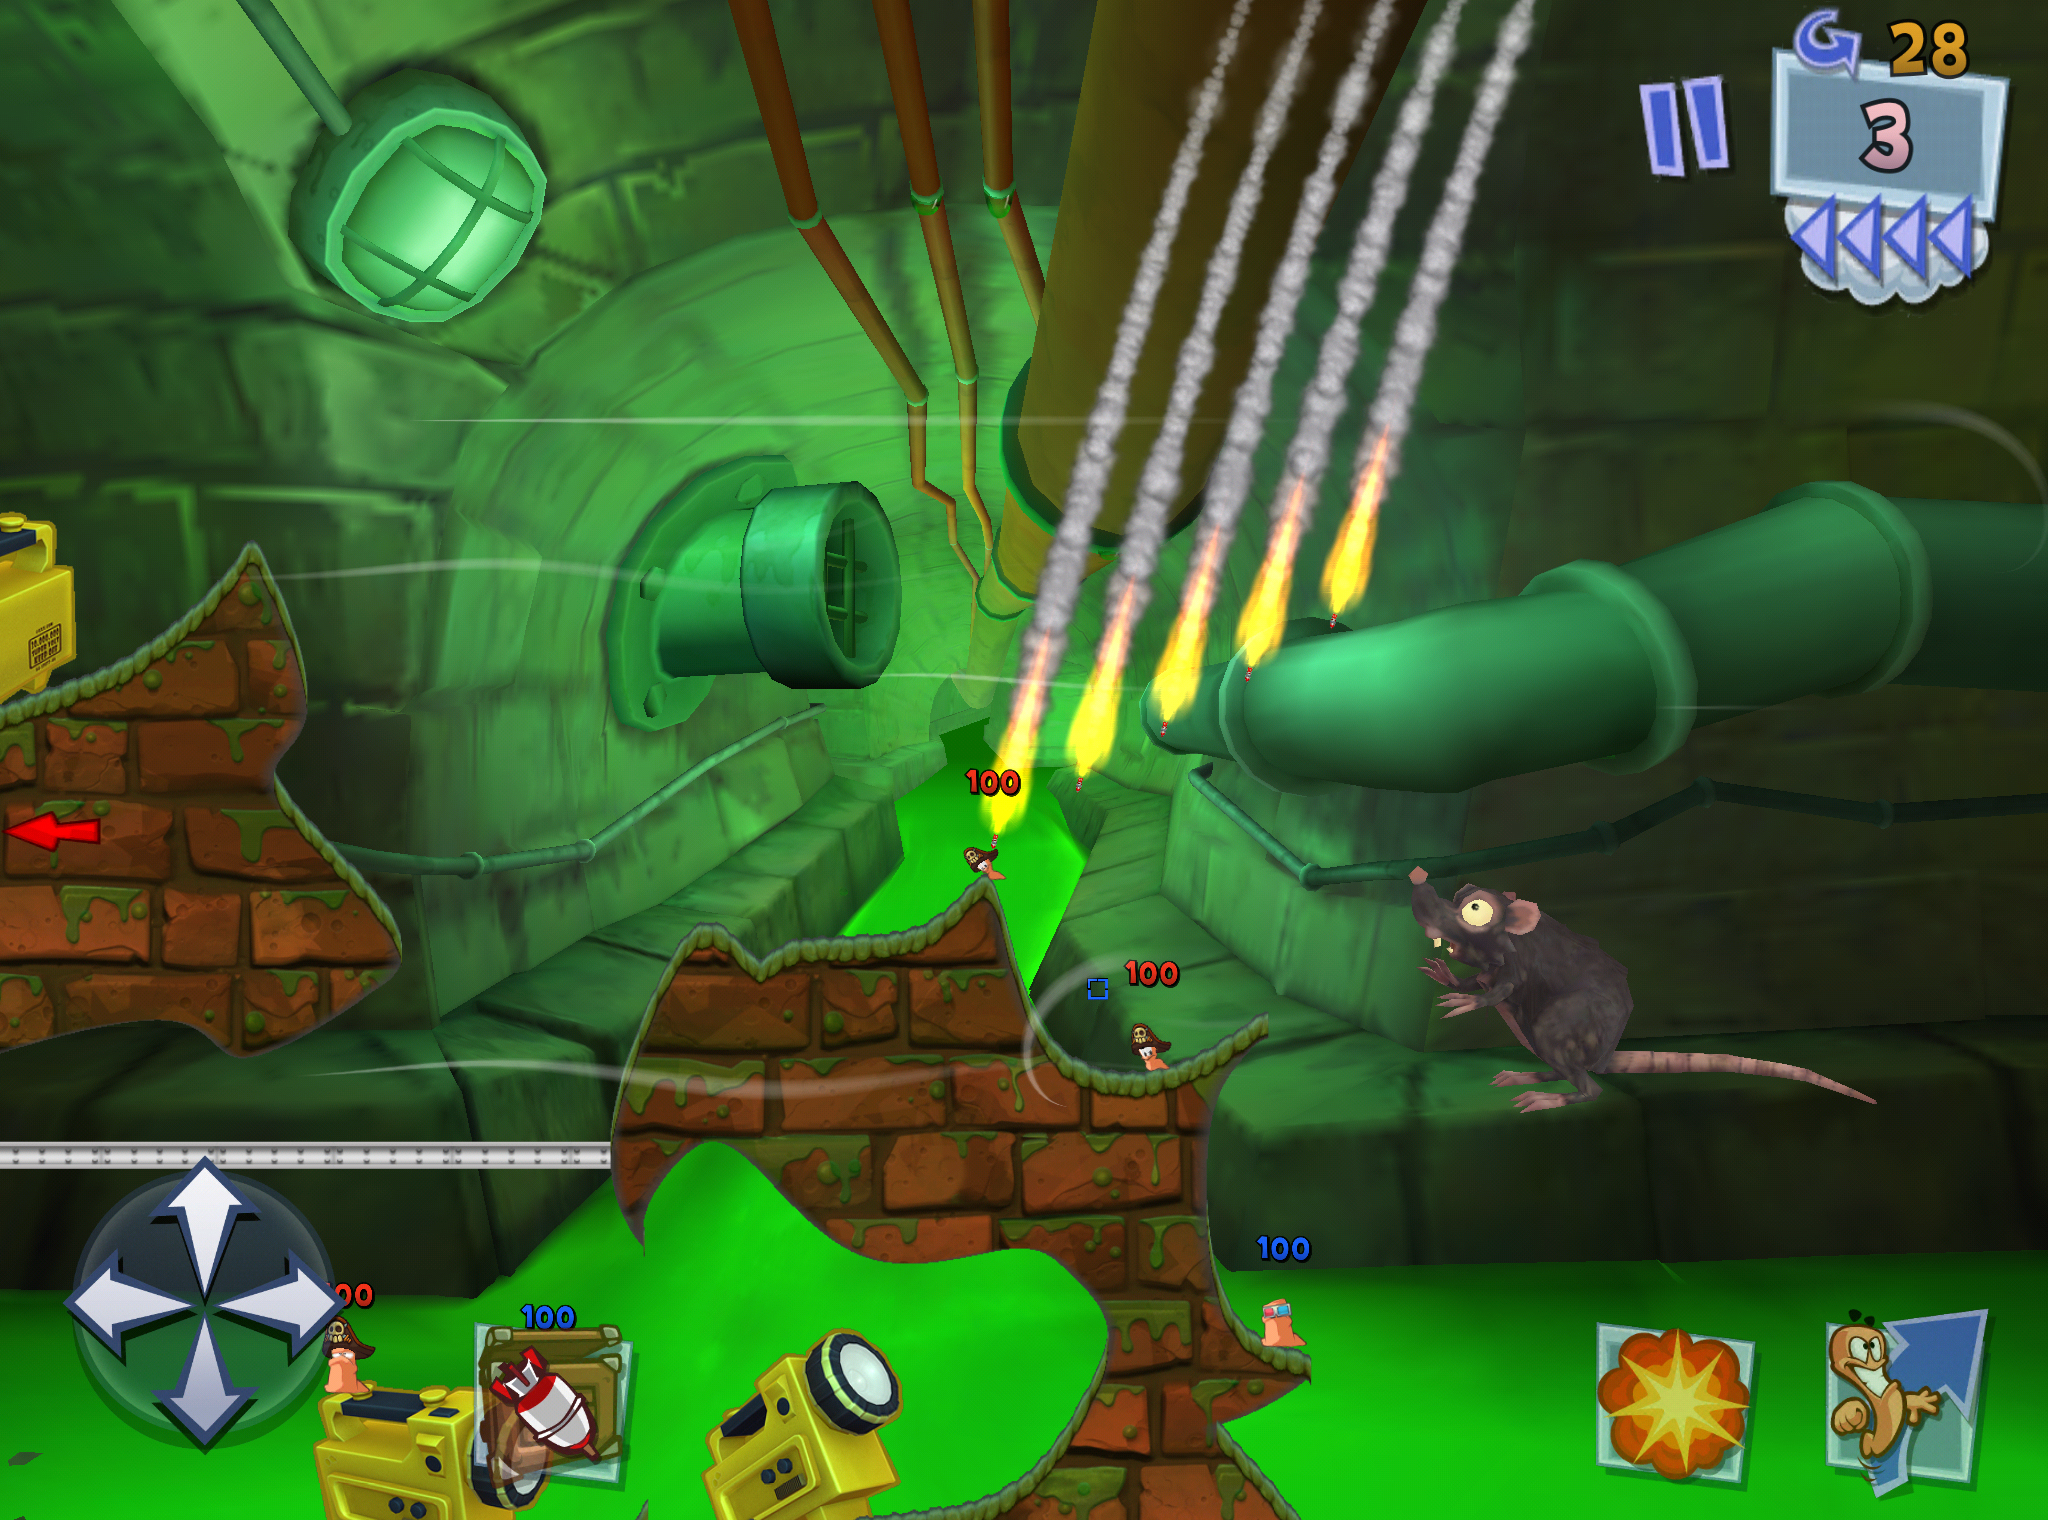 Worms 3, the Silver Award-winning joke-riddled tactical blaster, is on sale right now for iPad and iPhone